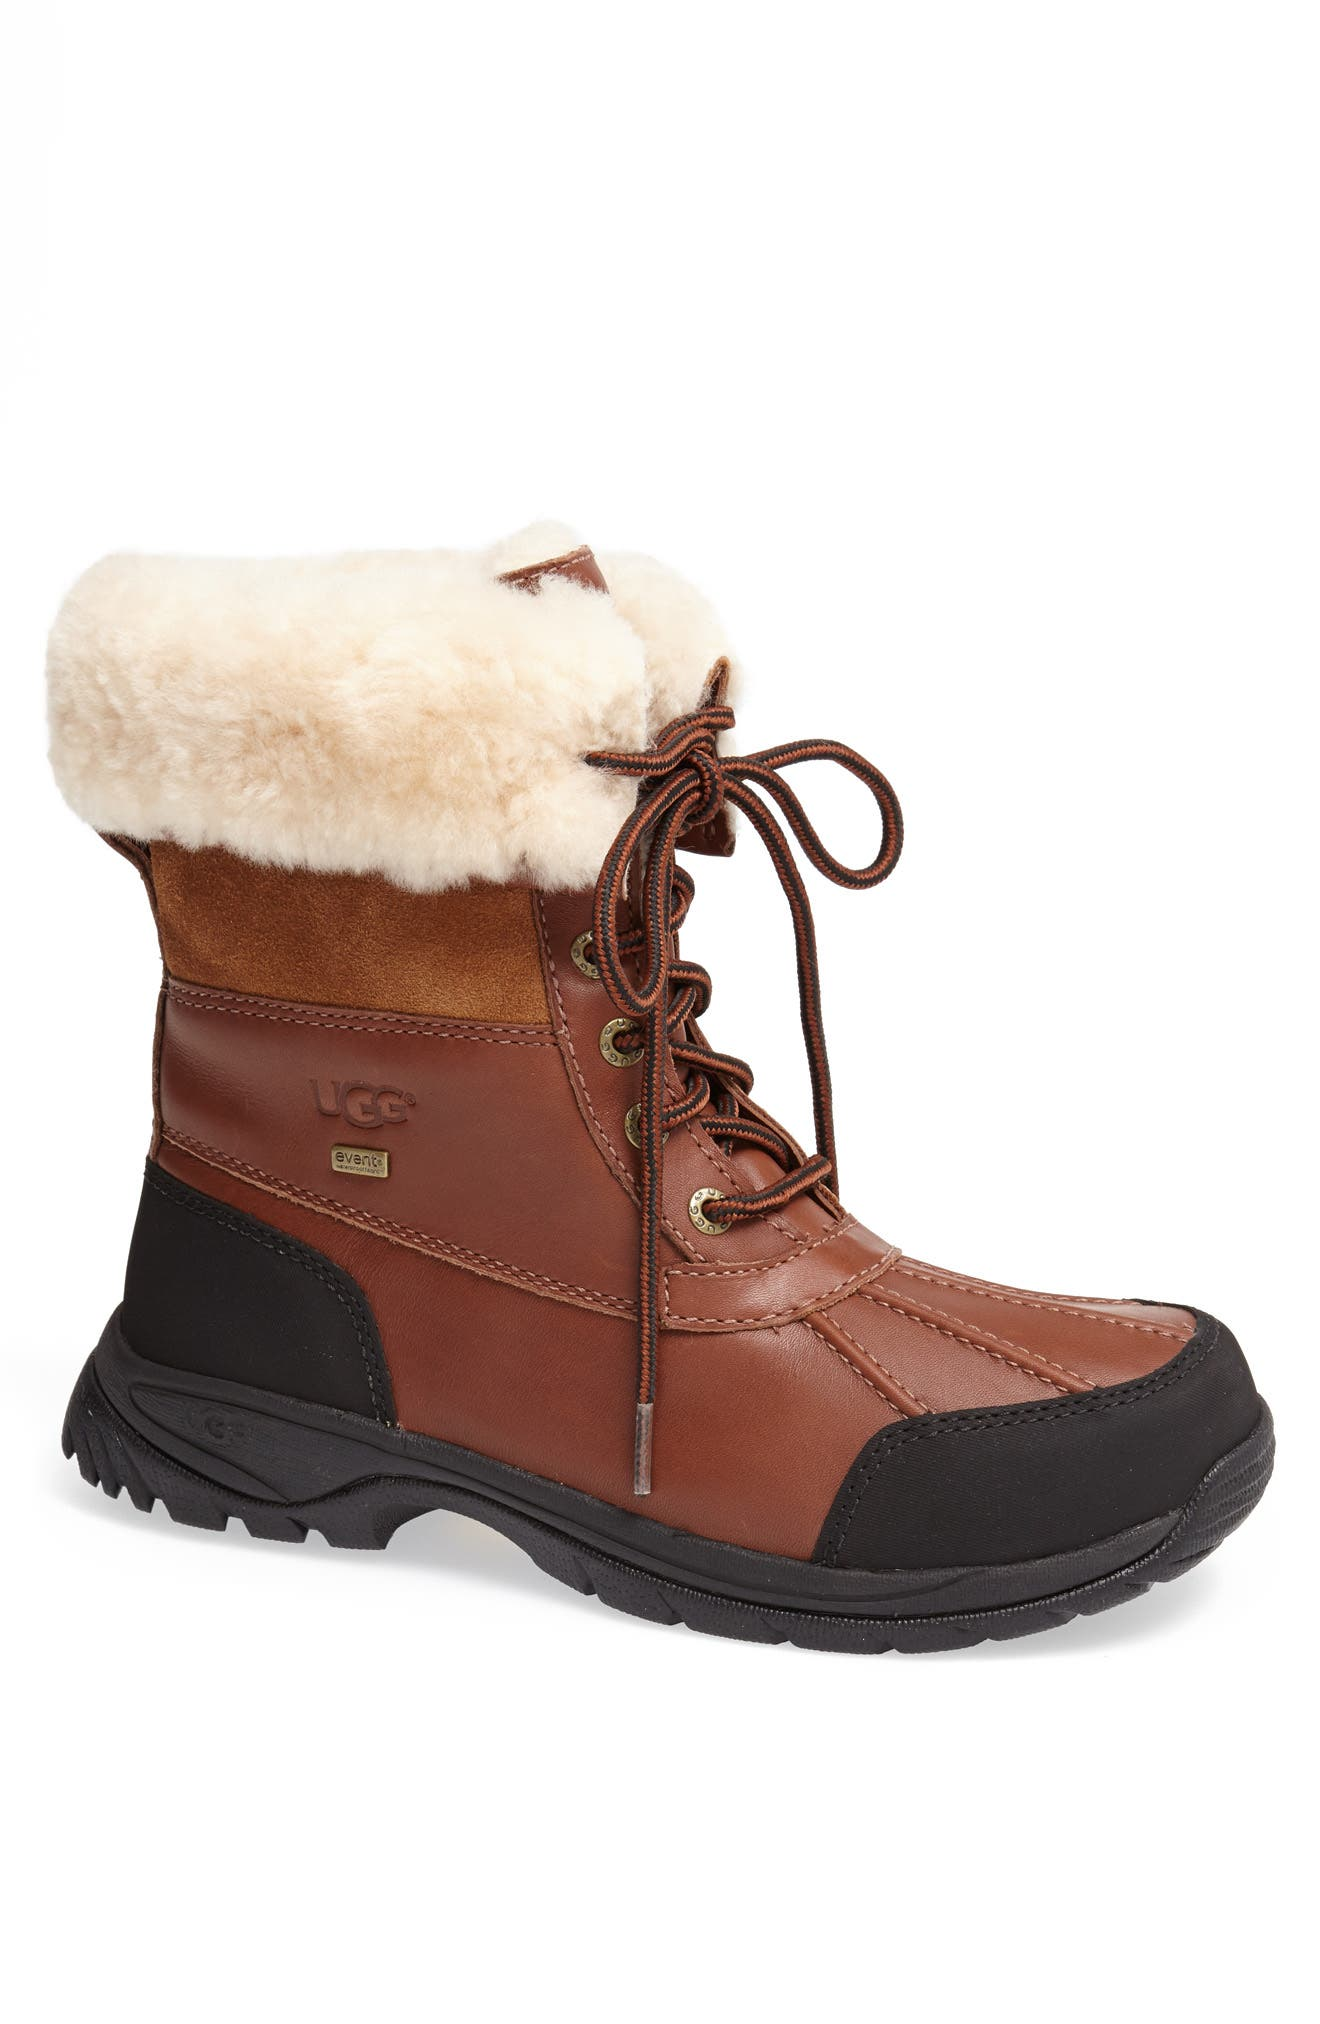 UGG<SUP>®</SUP>, Butte Waterproof Boot, Main thumbnail 1, color, WORCHESTER